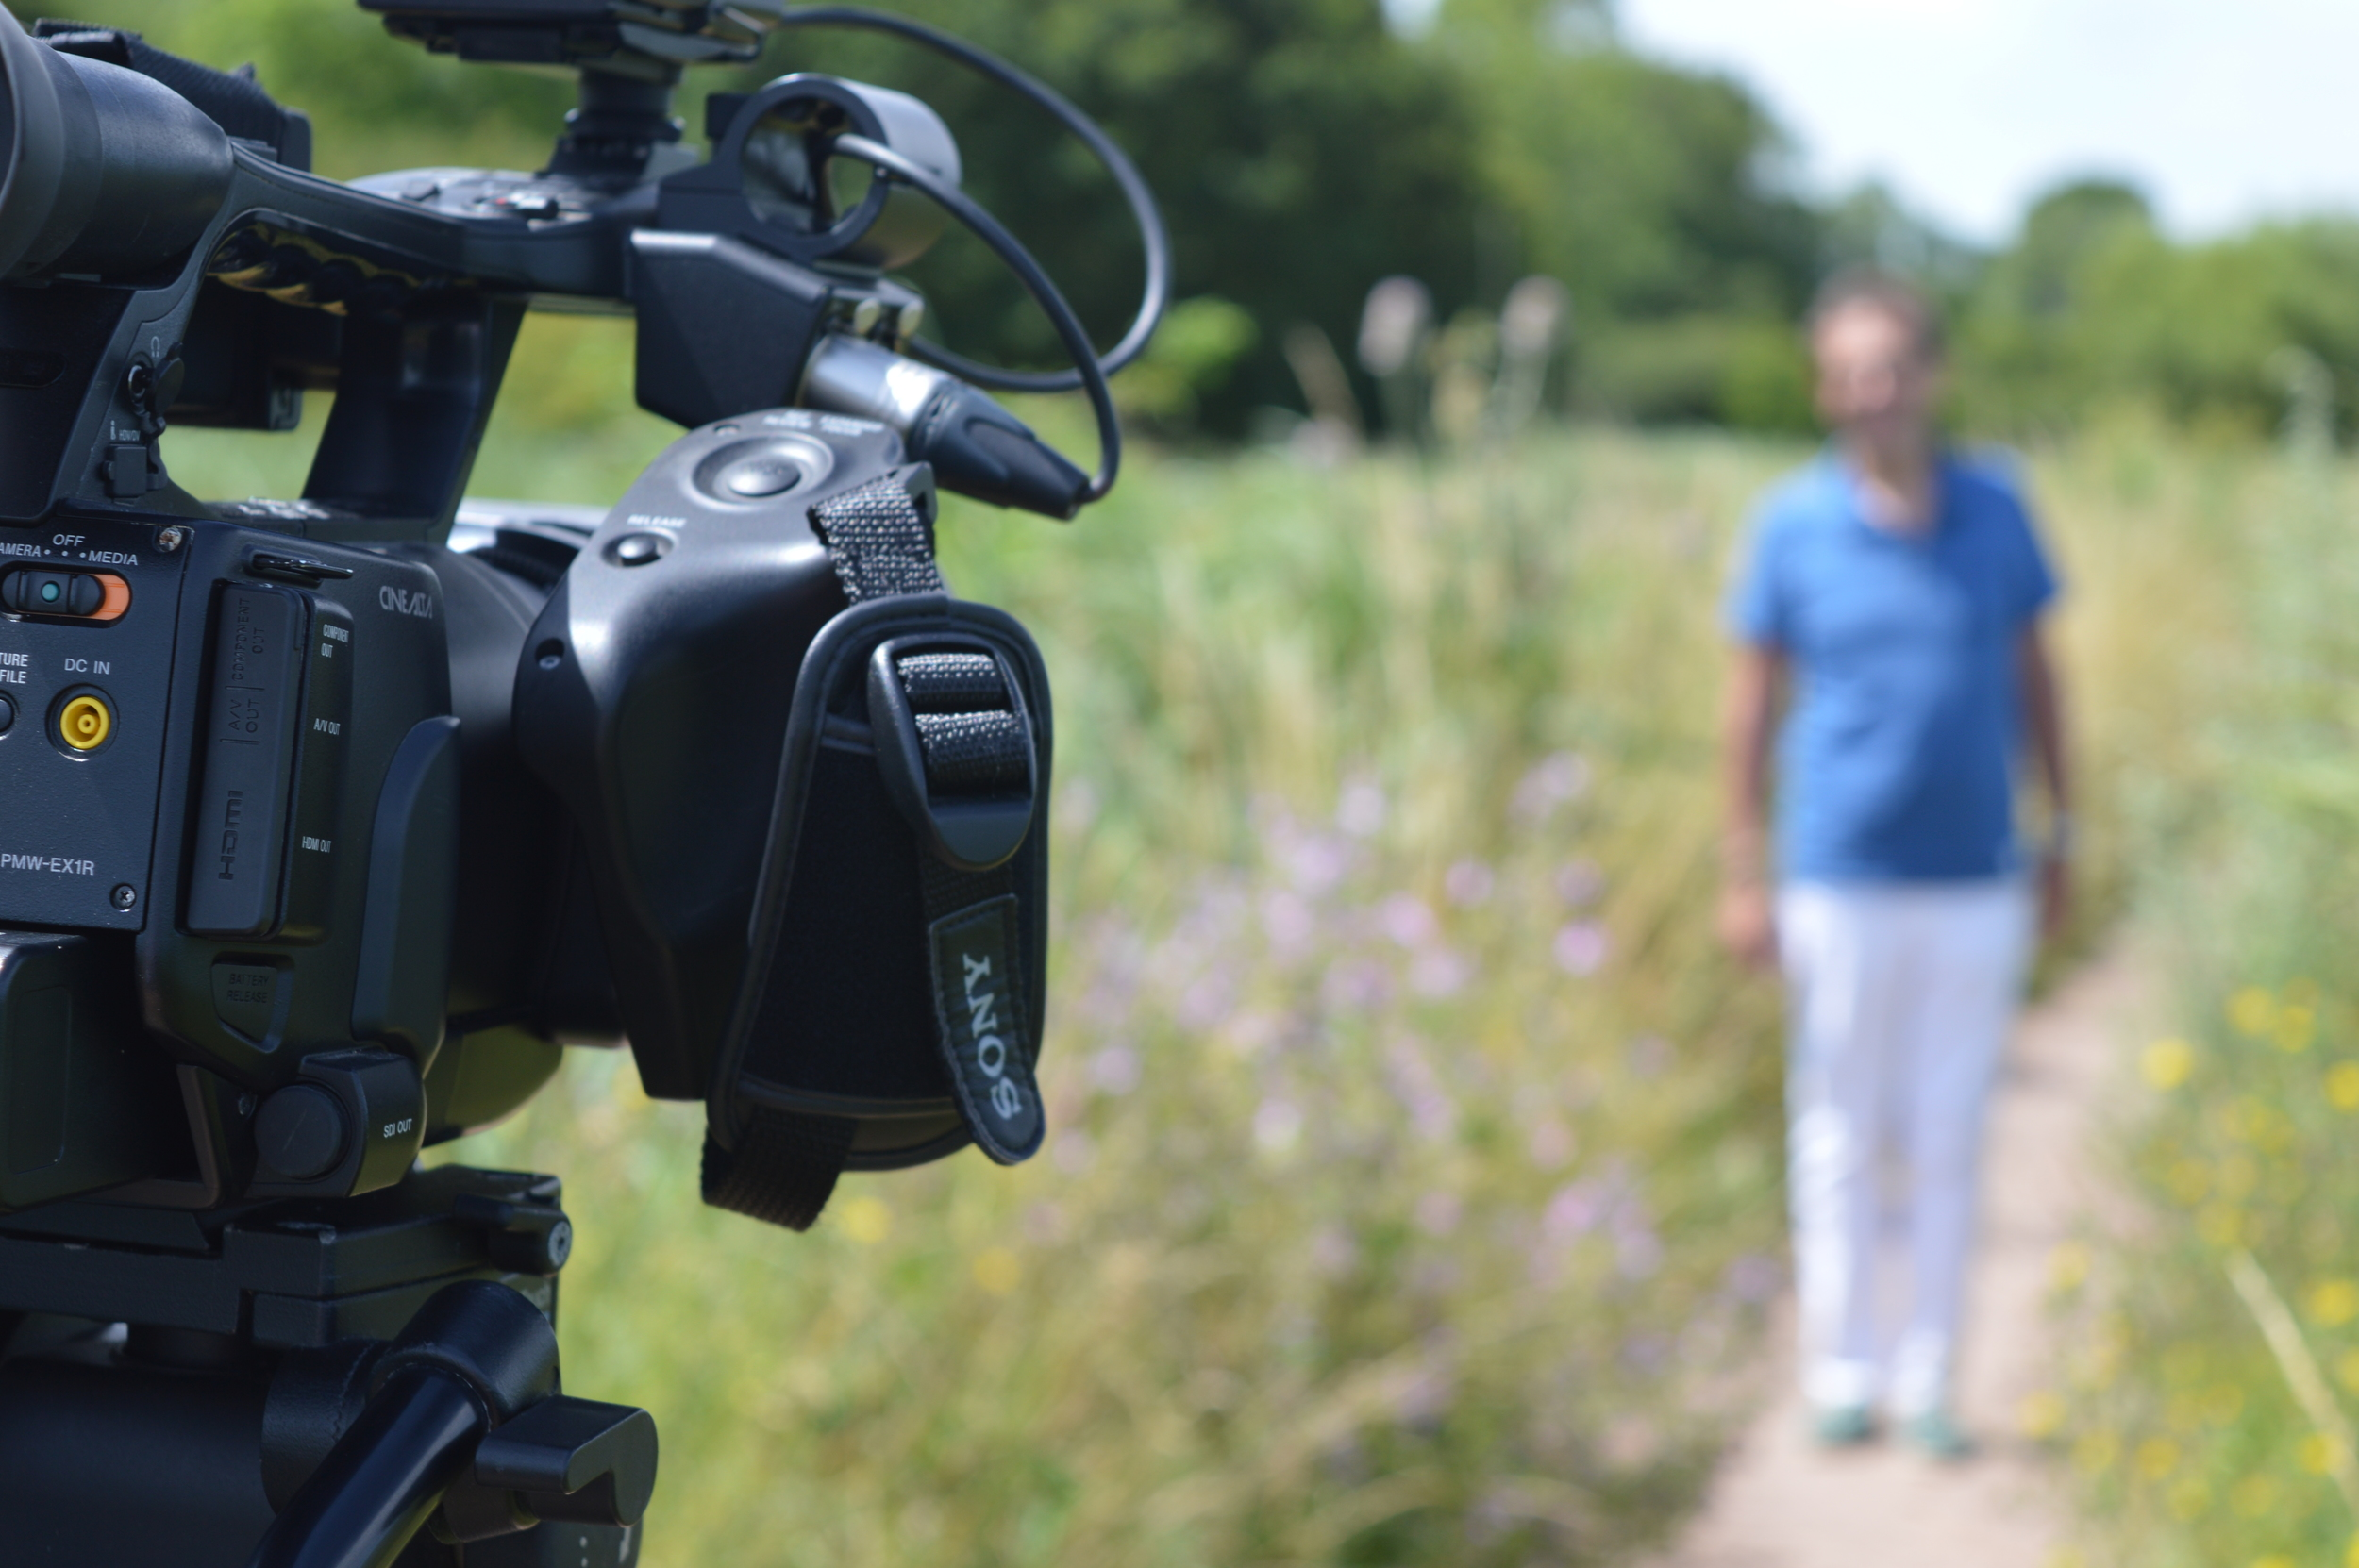 Lights, camera, action! Filming at The Broads National Park in Oulton Broad